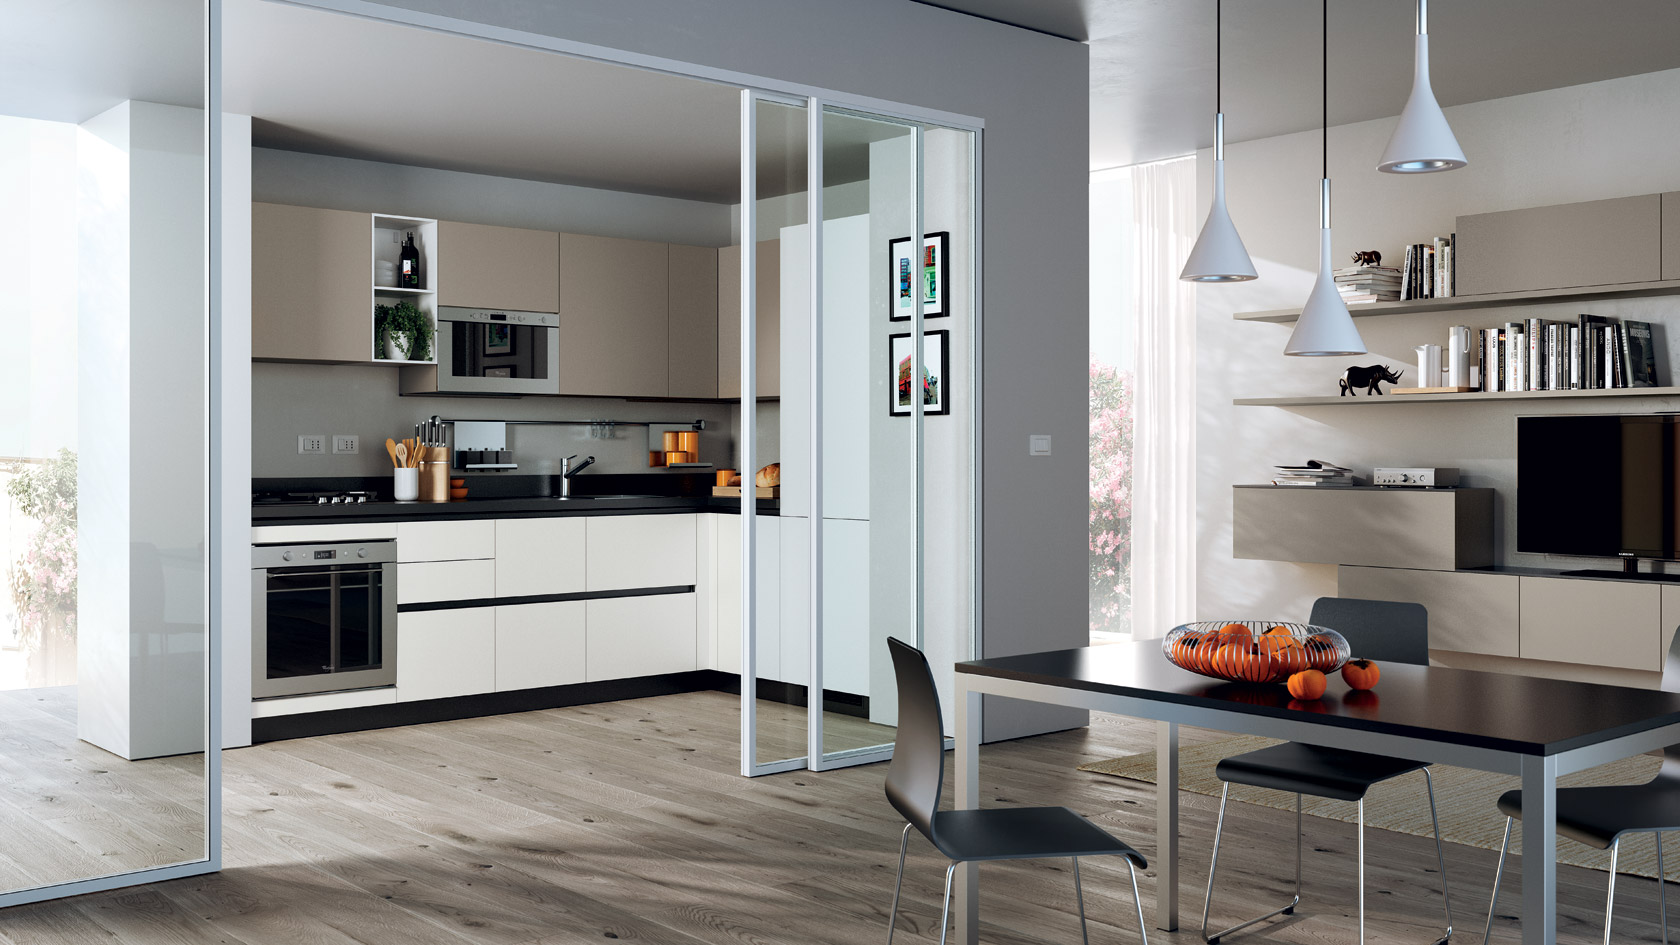 Awesome Cucina A Scomparsa Scavolini Gallery - Embercreative.us ...